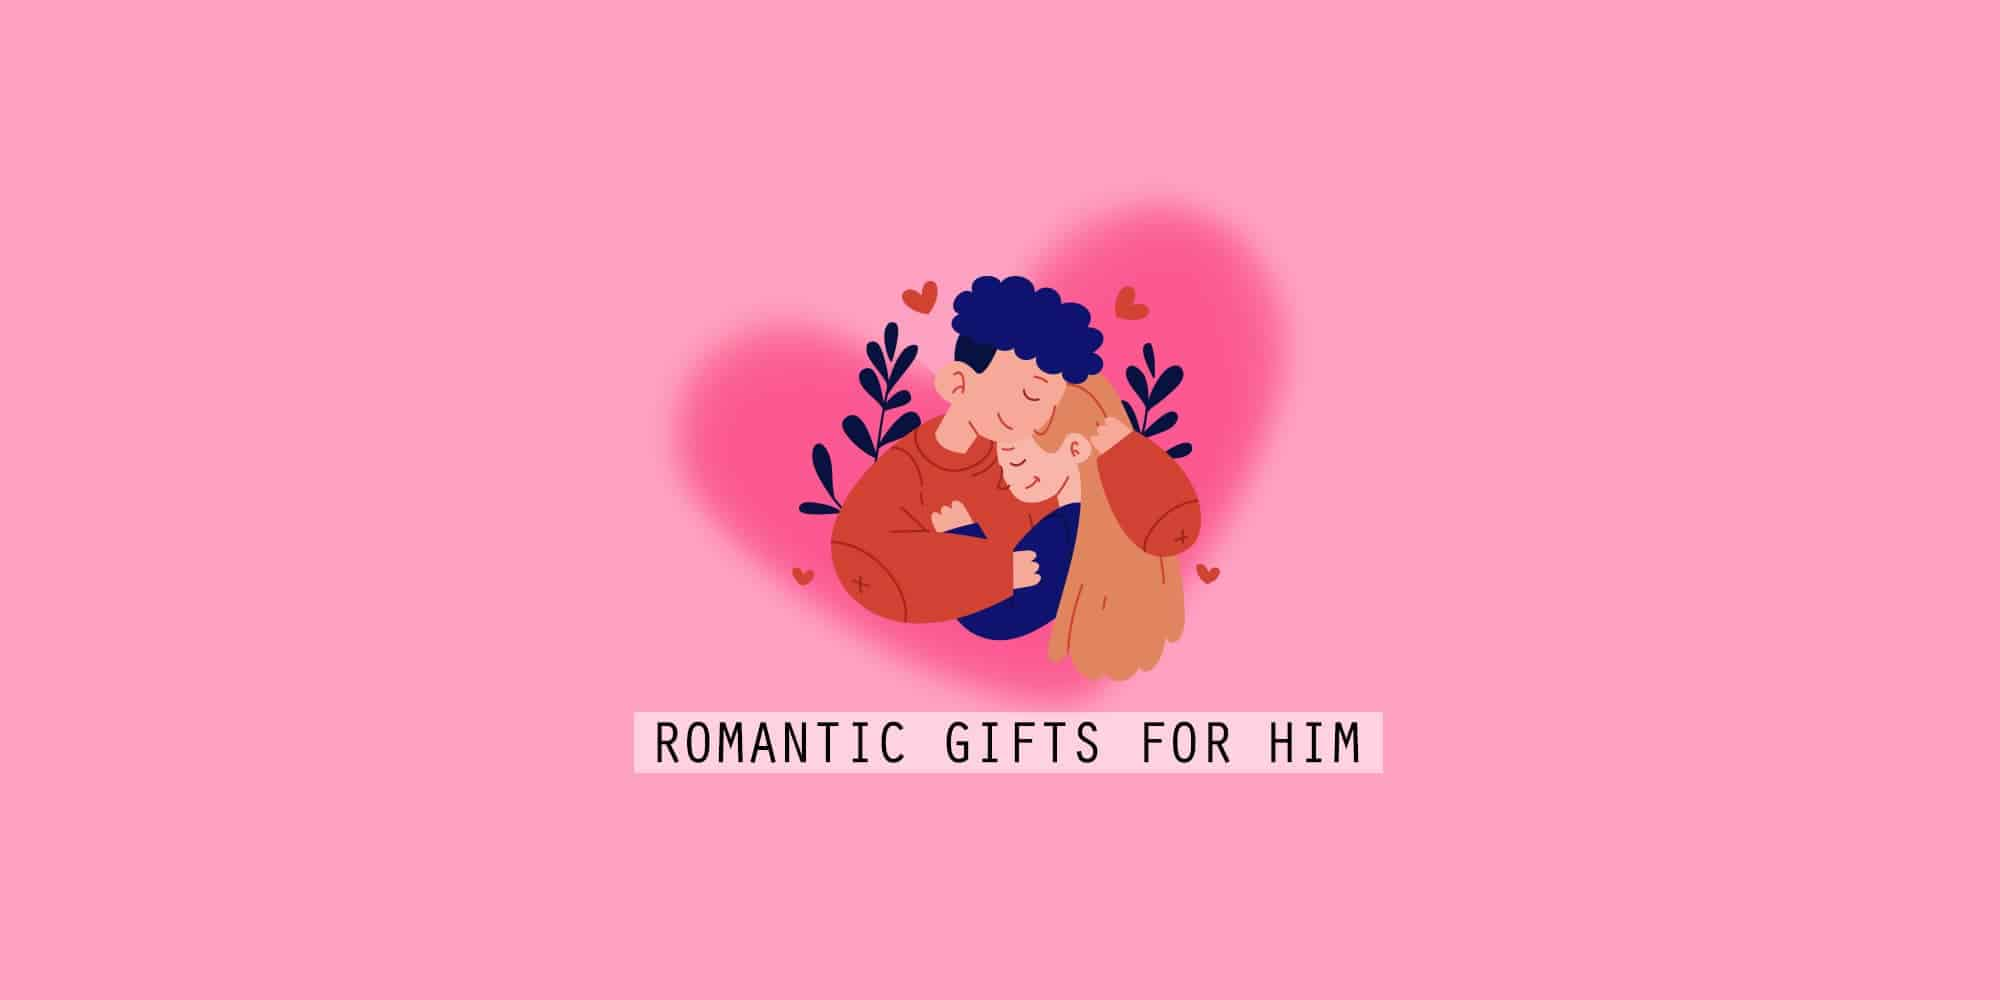 40+ Best Romantic Gifts For Him to Melt His Heart (2021)